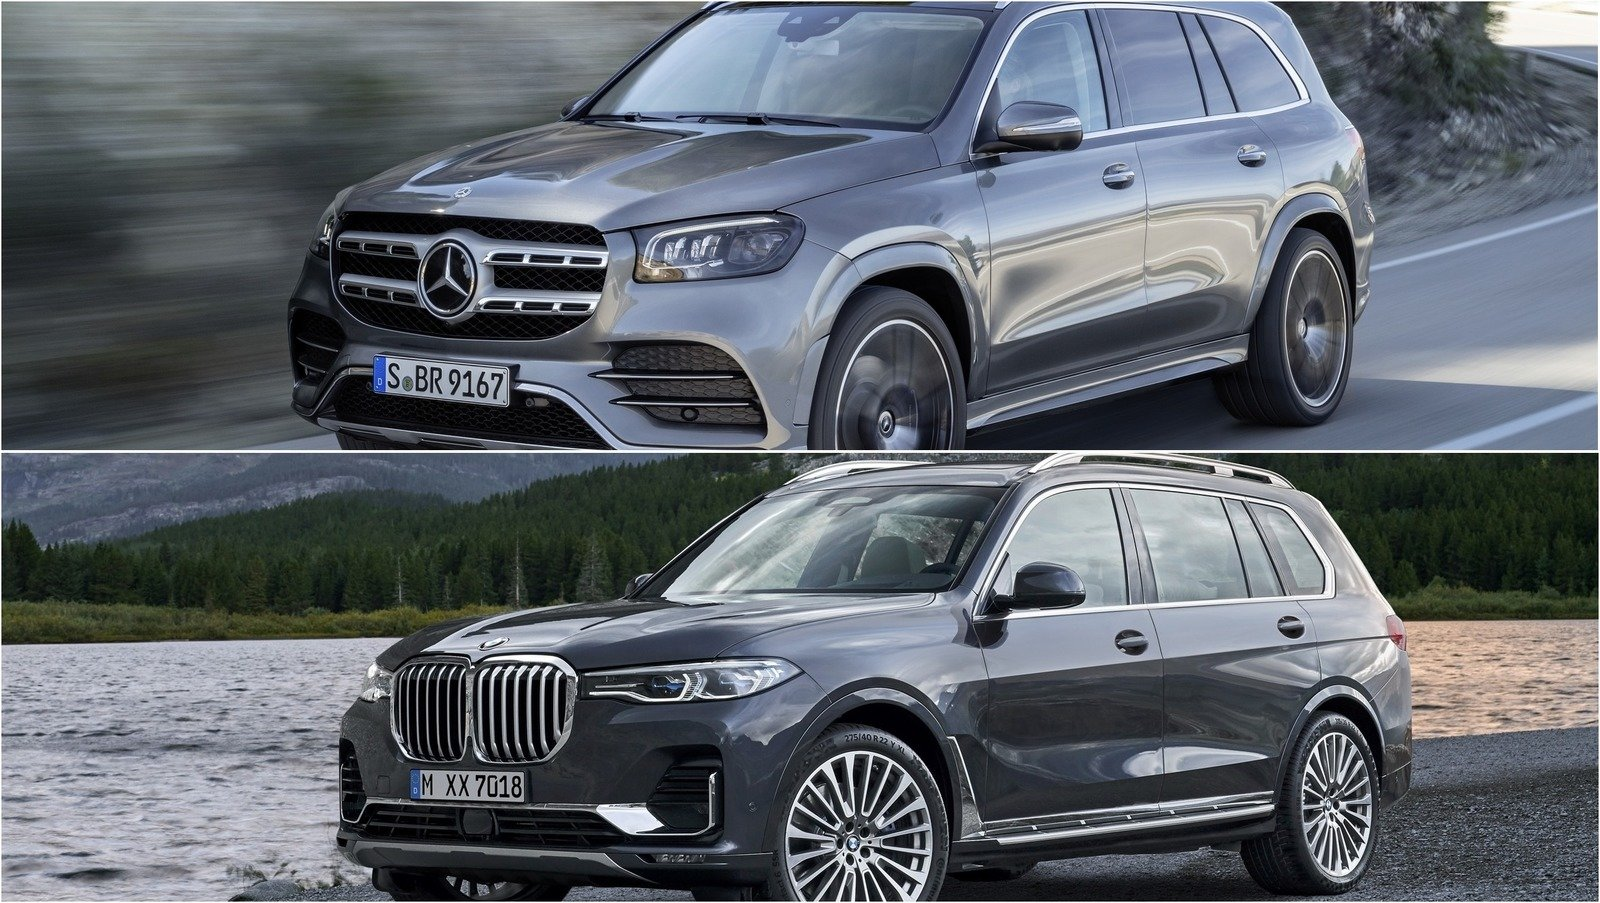 2020 Mercedes Gls Vs 2020 Bmw X7 Pictures Photos